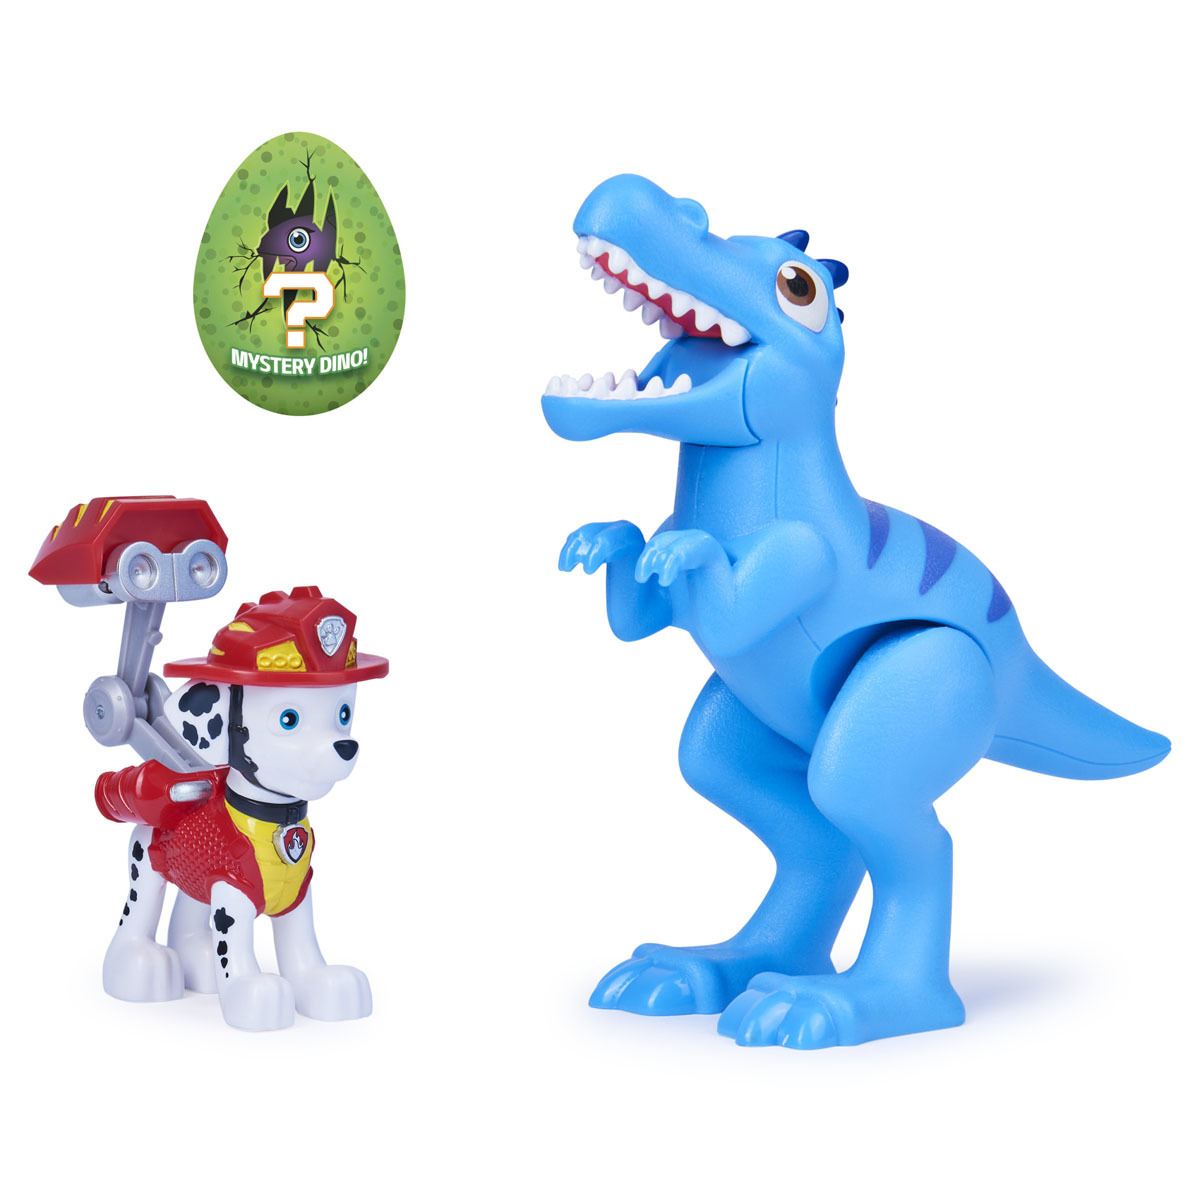 Paw Patrol Dino Rescue Figures and Mystery Dinosaur - Marshall and Velociraptor from Early Learning Center